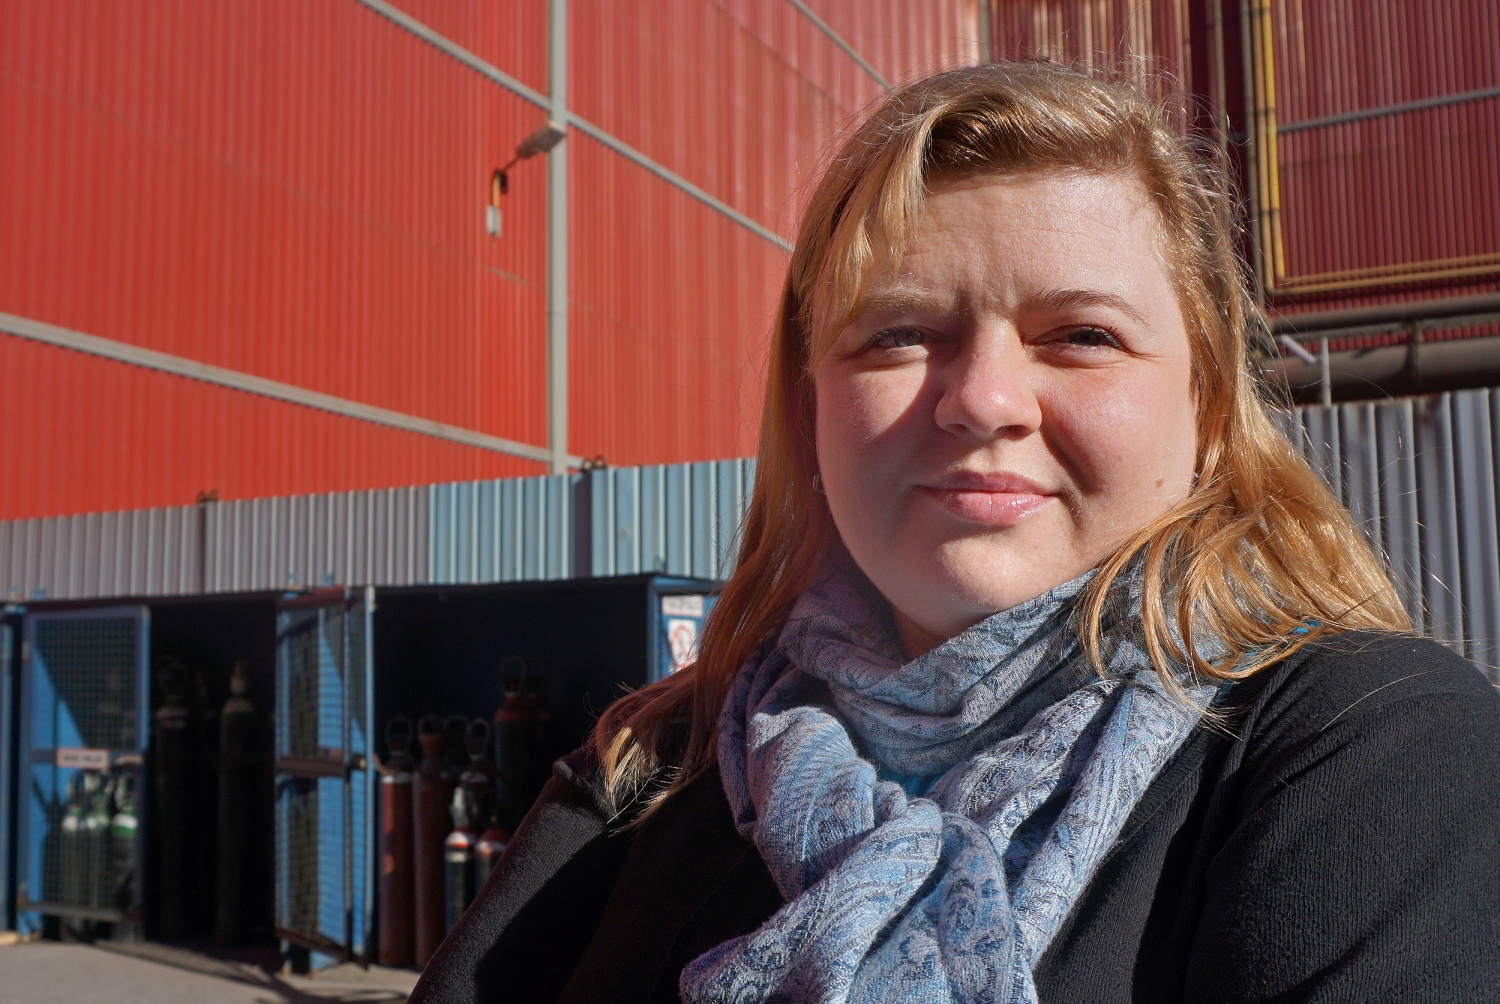 Anna Kireeva works with the environmental organization Bellona Murmansk. (Thomas Nilsen/Barents Observer)